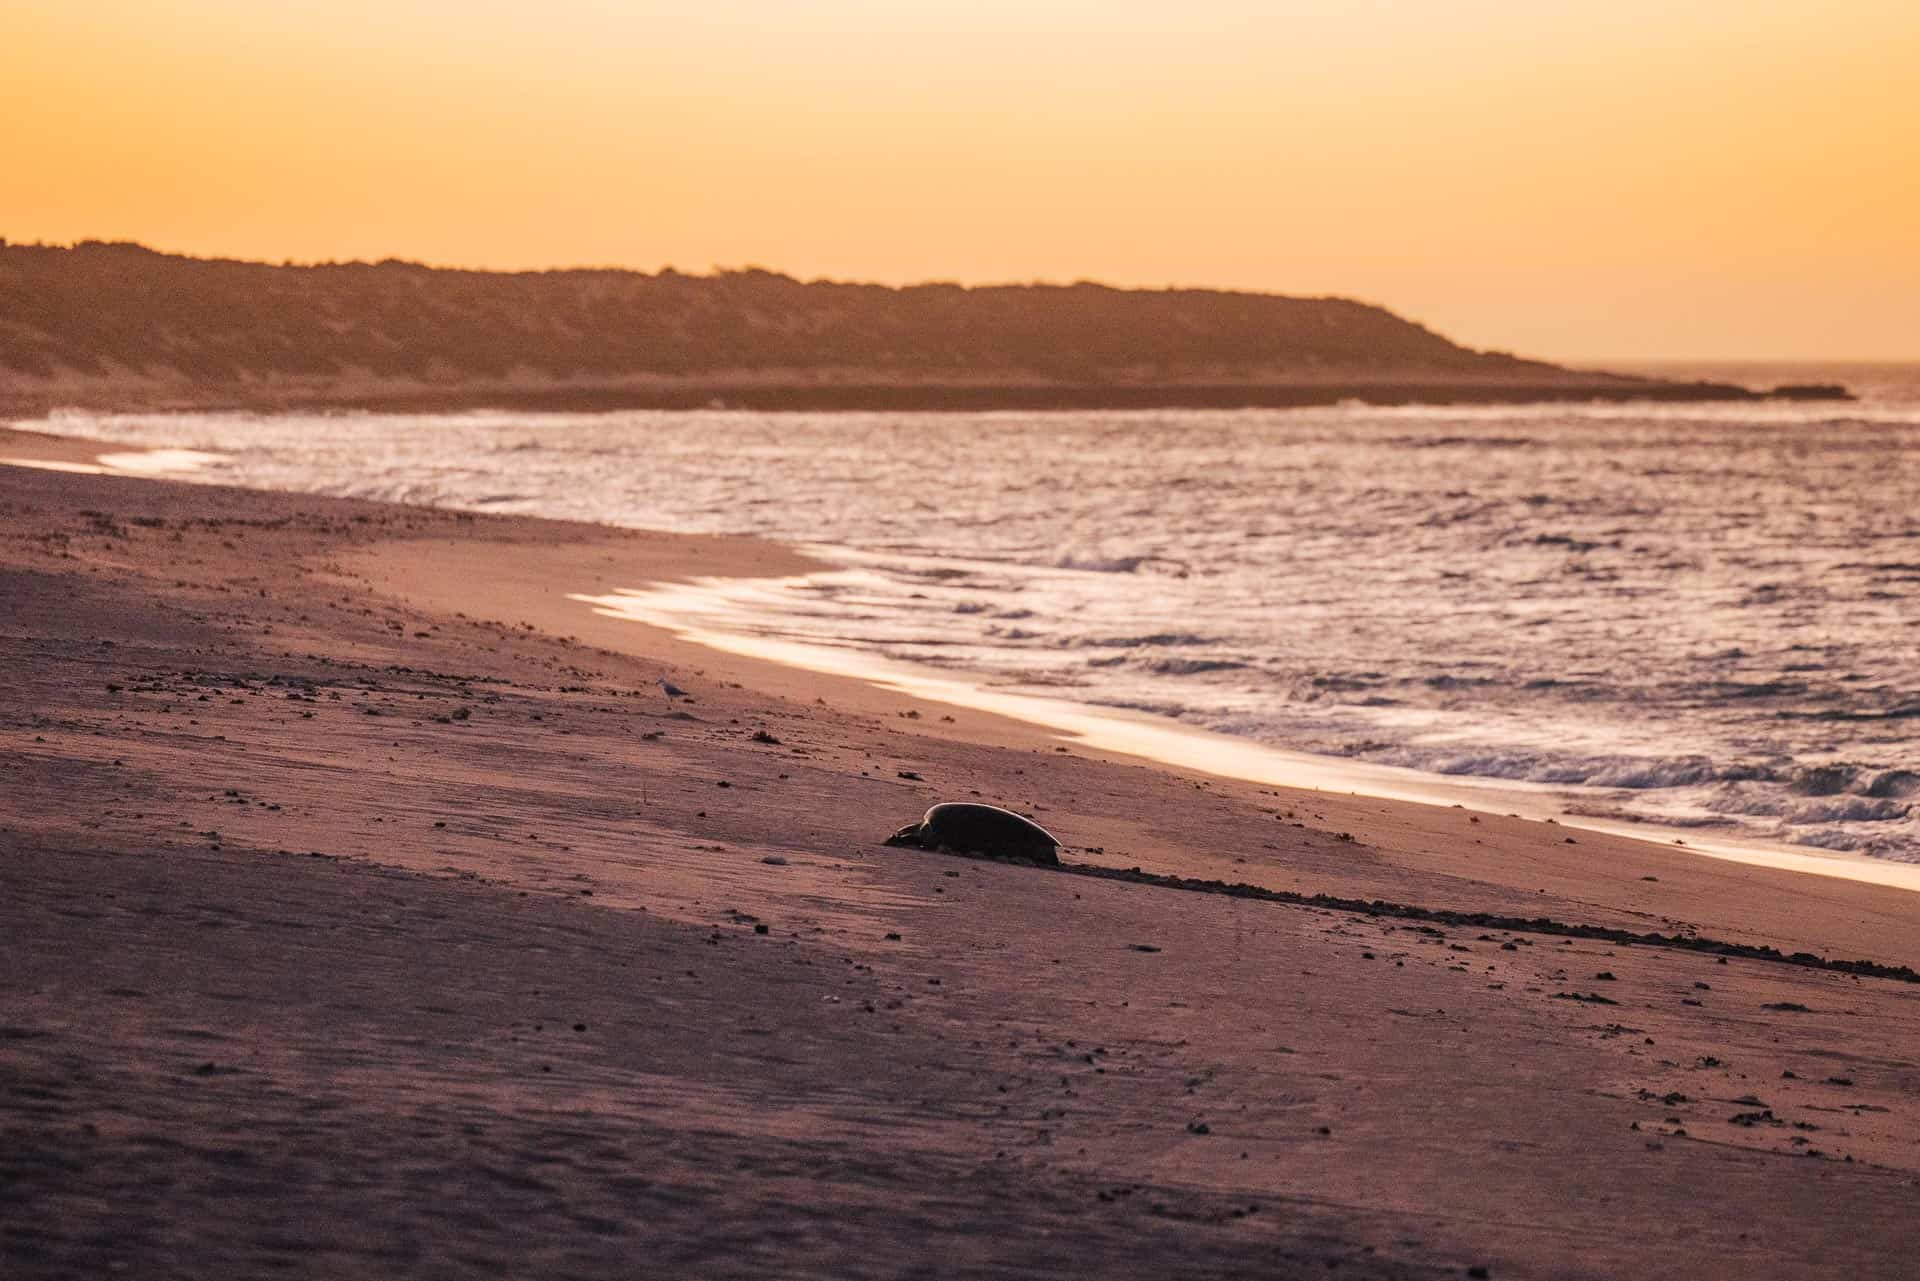 jurabi turtle centre, exmpouth turtles, things to do in exmouth, exmouth western australia, what to do in exmouth, exmouth things to do